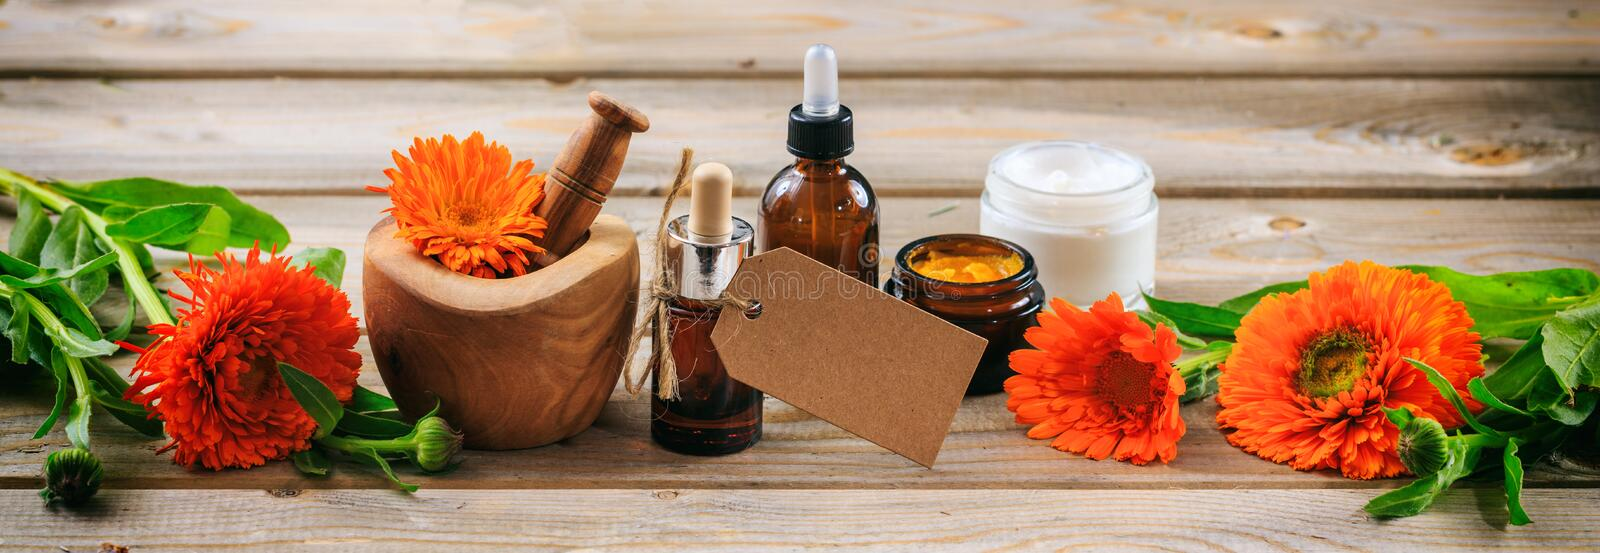 3 105 Aromatherapy Banner Photos Free Royalty Free Stock Photos From Dreamstime